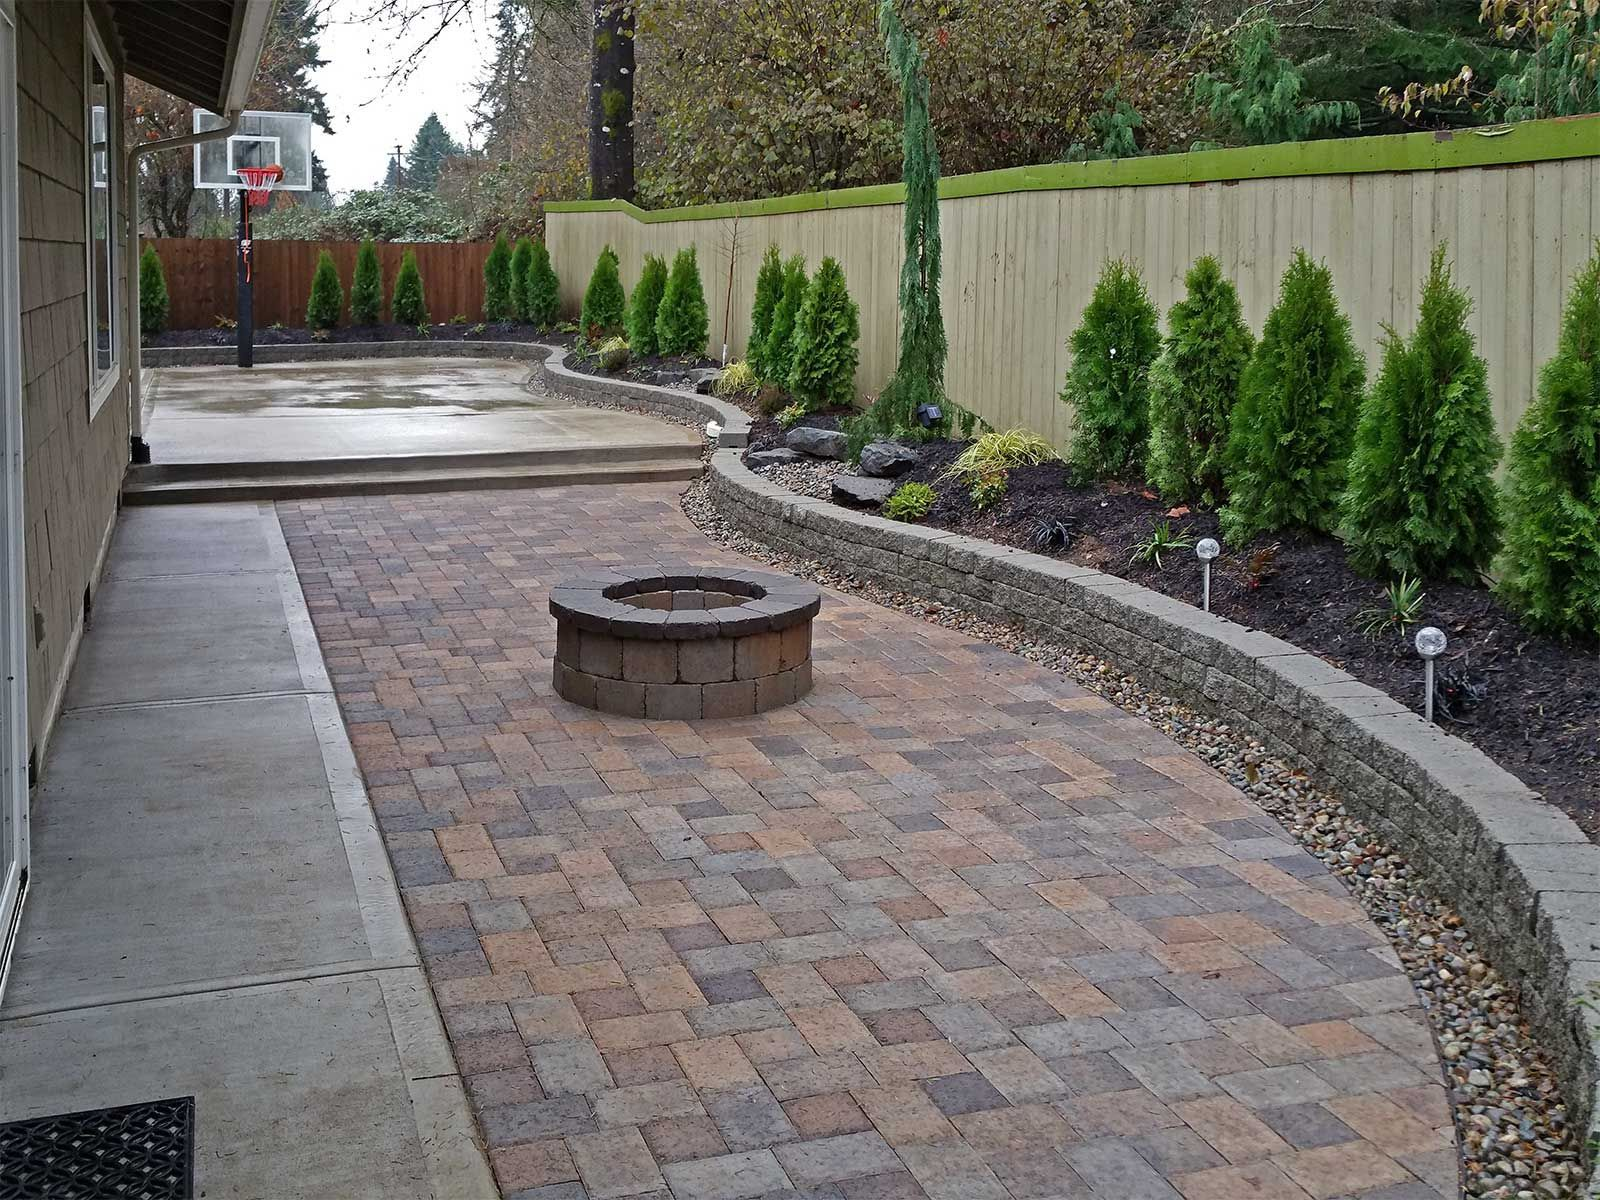 11 Awesome Ideas How To Make Backyard Paver Patio Ideas Pavers Backyard Backyard Landscaping Patio Pavers Design